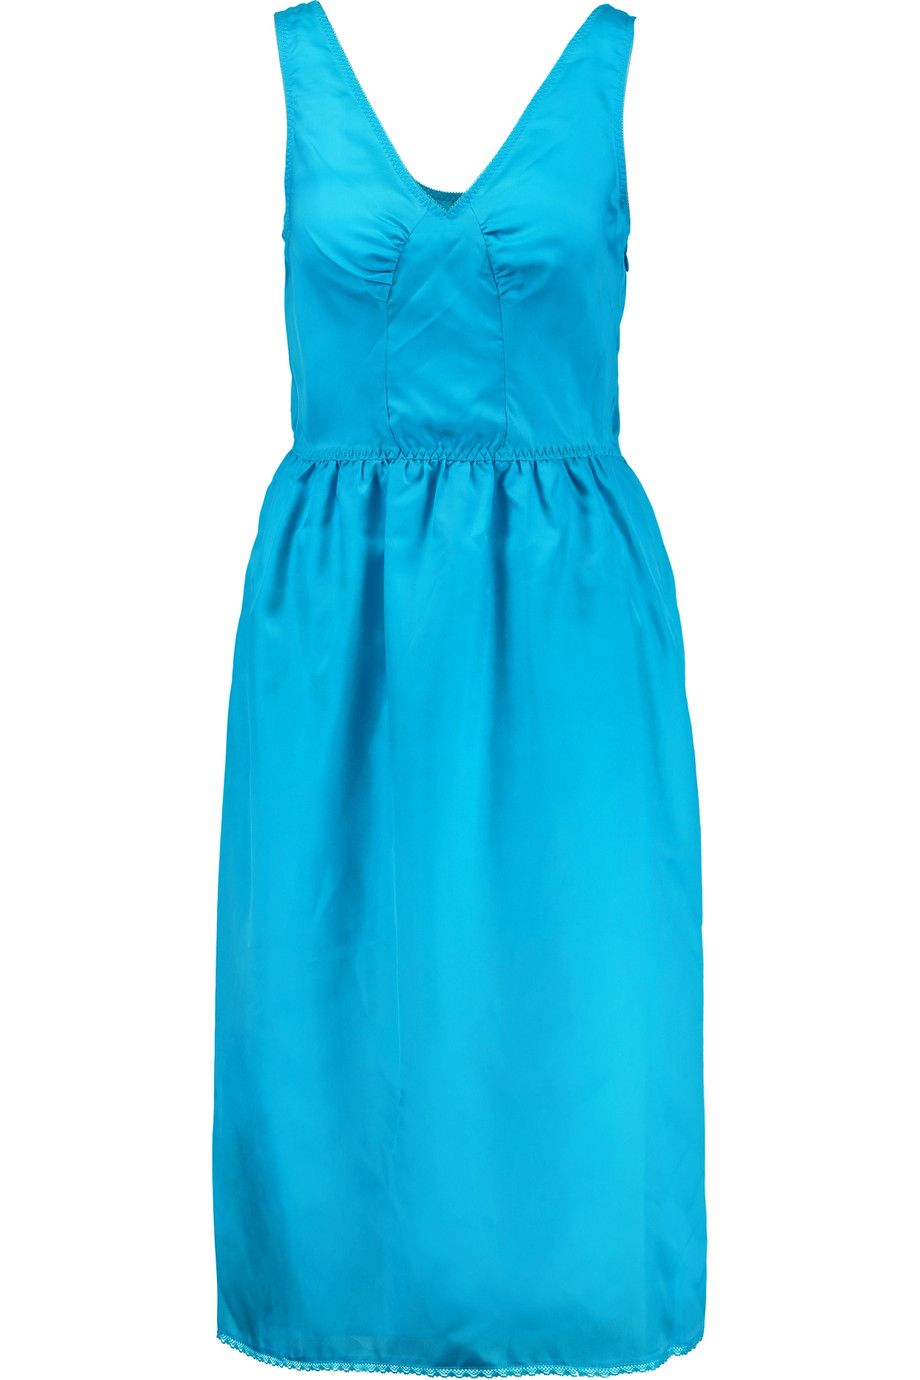 MARC BY MARC JACOBS . #marcbymarcjacobs #cloth #dress